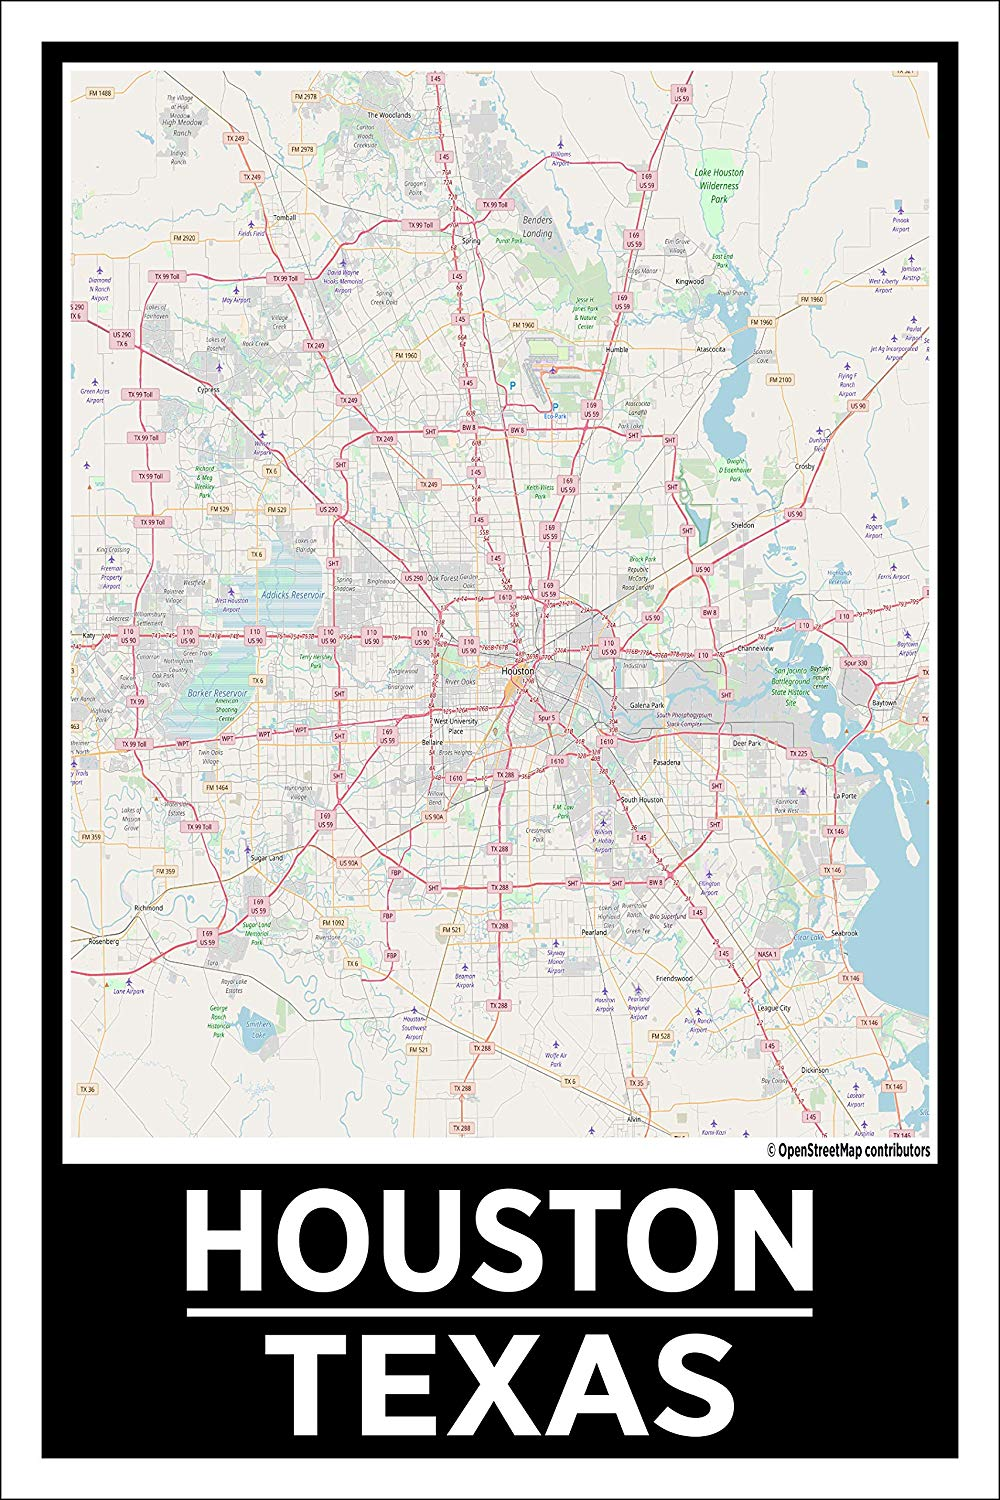 "Spitzy's Houston Texas Map Poster - Home Wall Art for Your Bedroom or Home Office - Map of Houston, City Map Poster (12"" x 18"" Dimensions Include a White .5"" Border)"